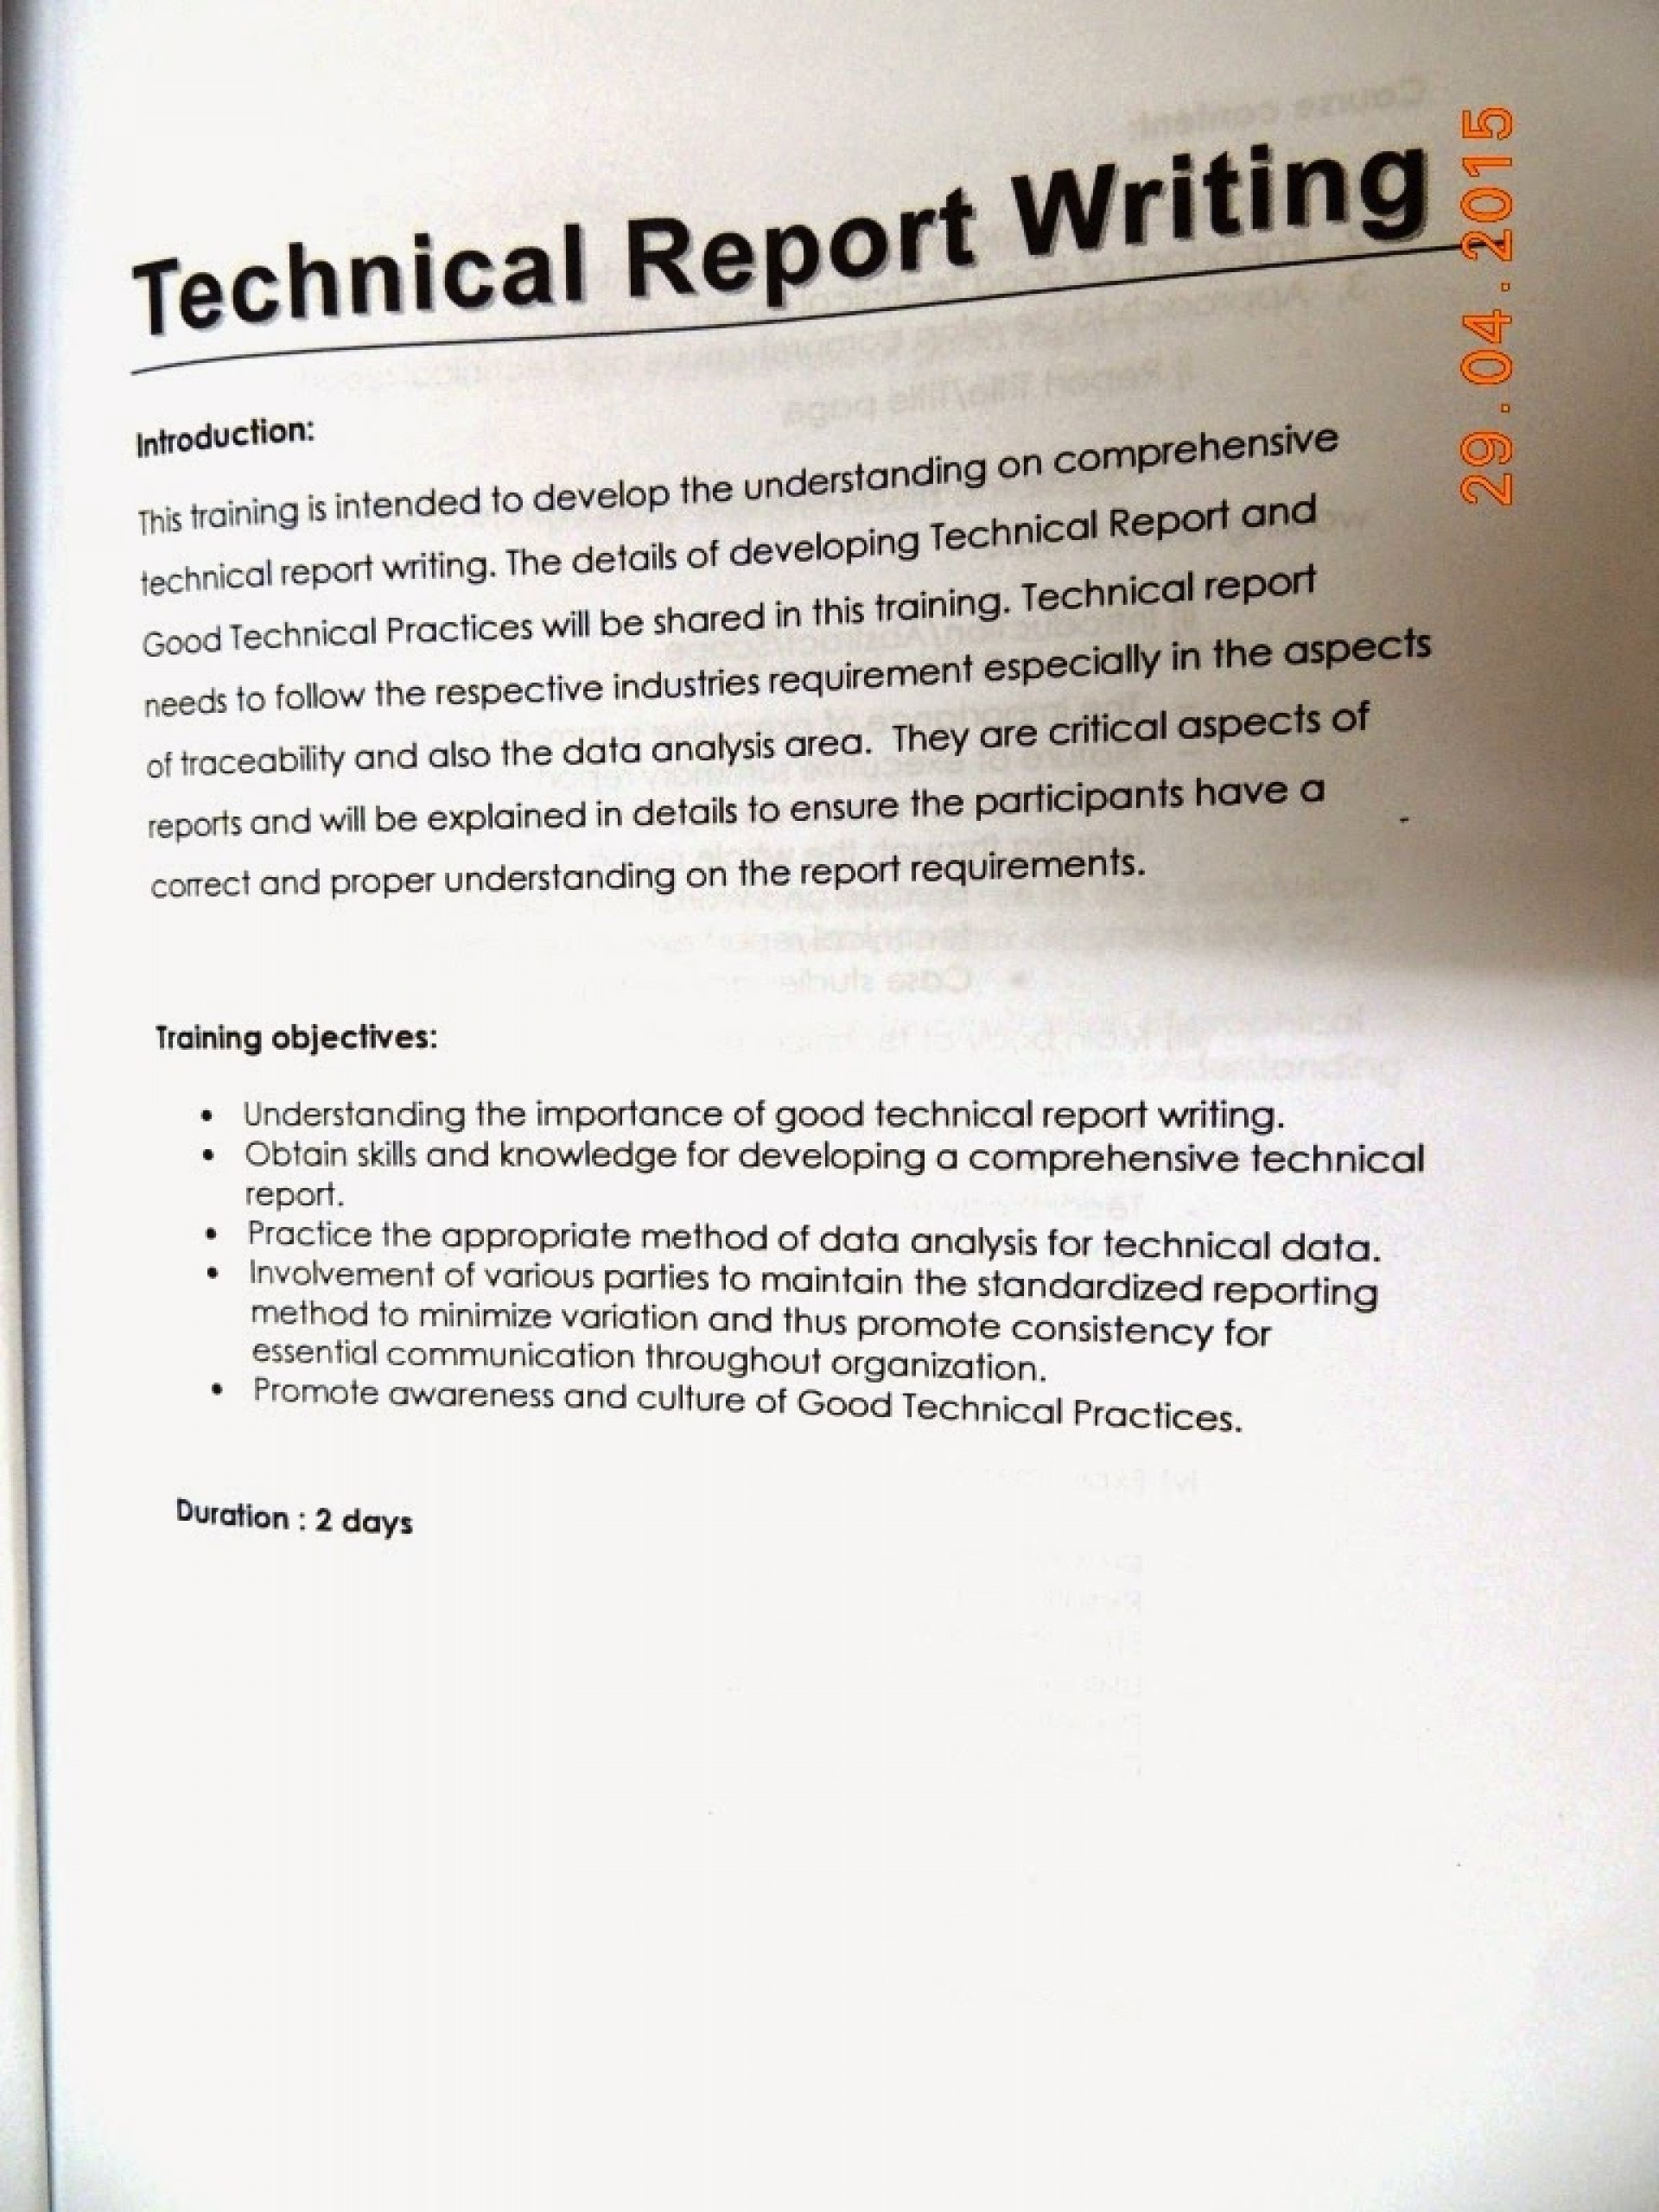 007 Research Paper Technicalreportwritingjennyliewexperience2 Jpg Example Of In Technical Wonderful Writing 1920